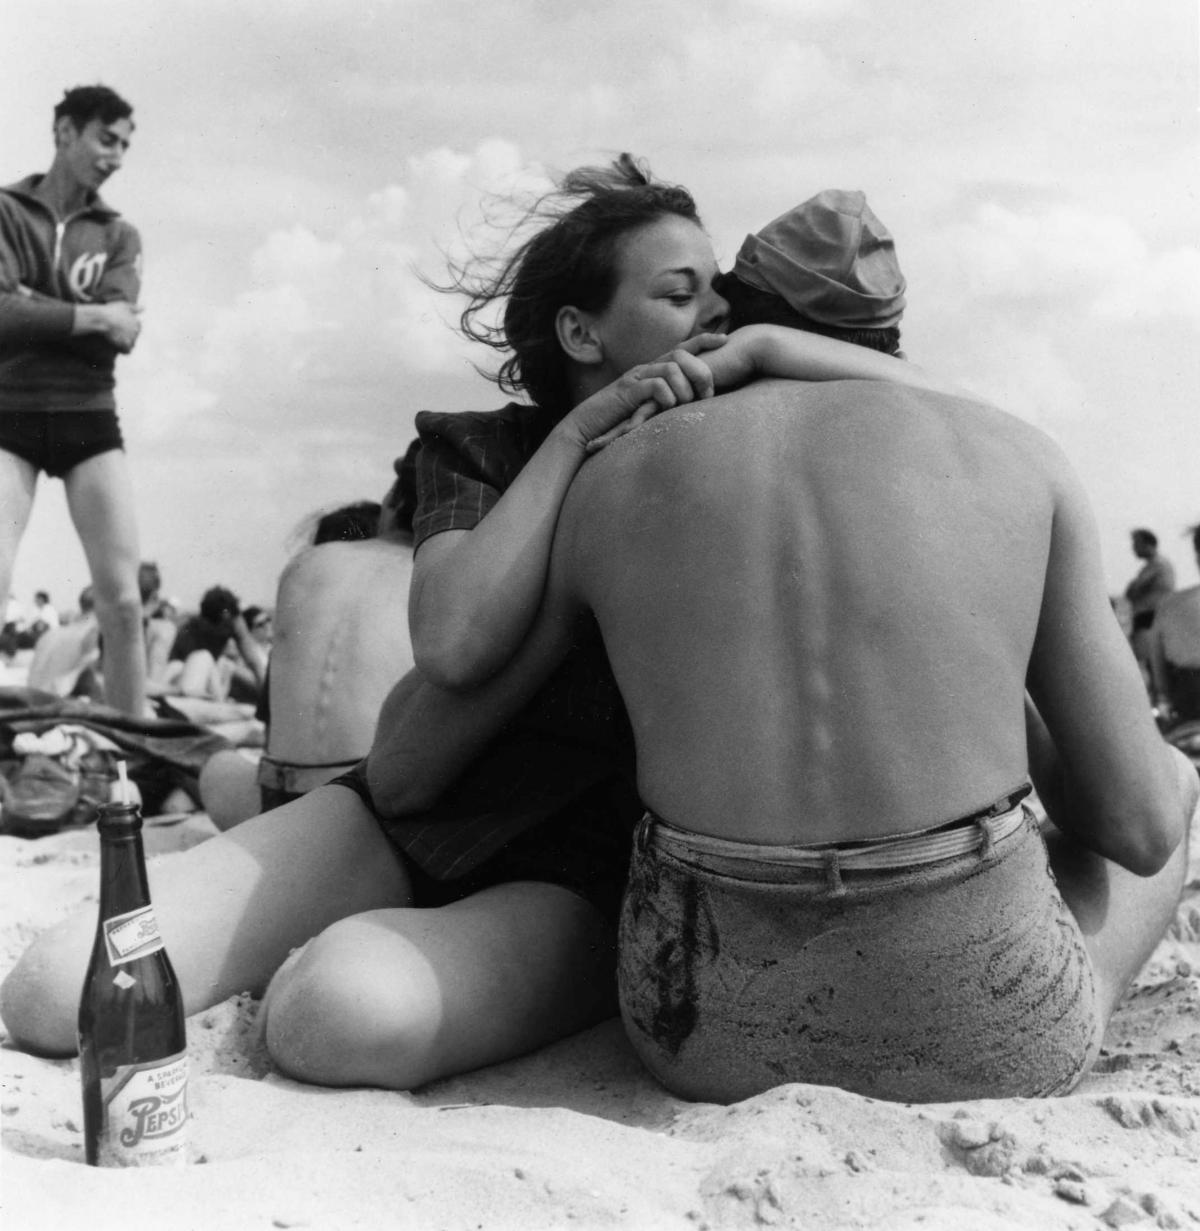 Black and white photo of a man and woman embracing on the beach at Coney Island, with the man's back to the viewer and the woman whispering in his ear